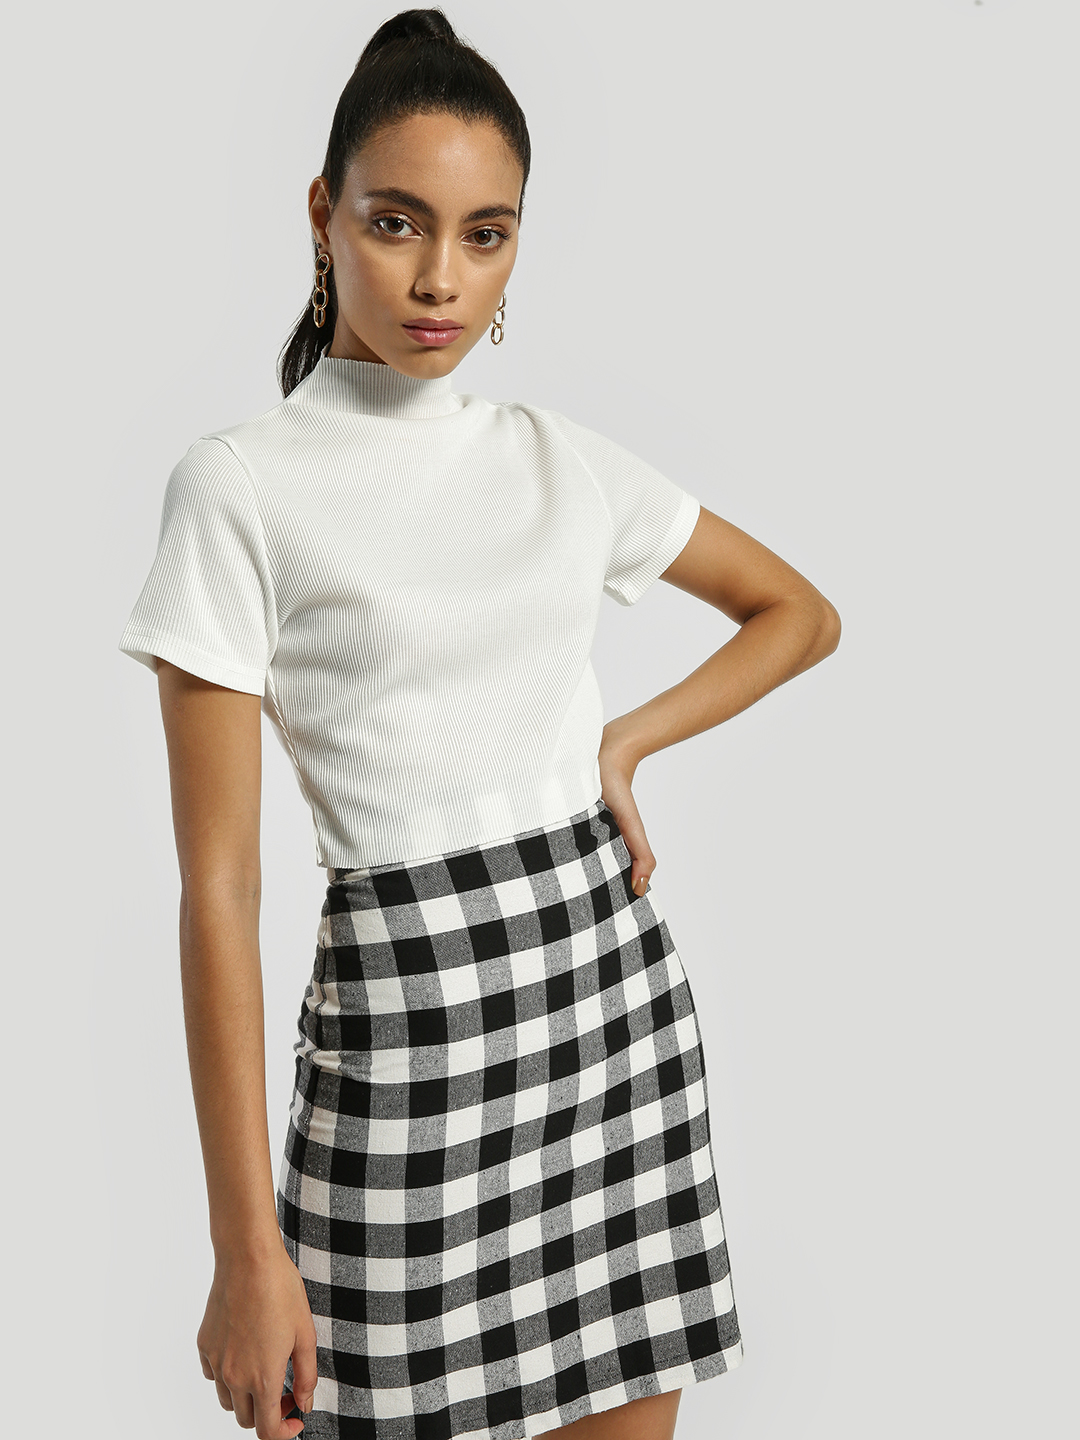 EmmaCloth White Ribbed Turtle Neck Crop Top 1